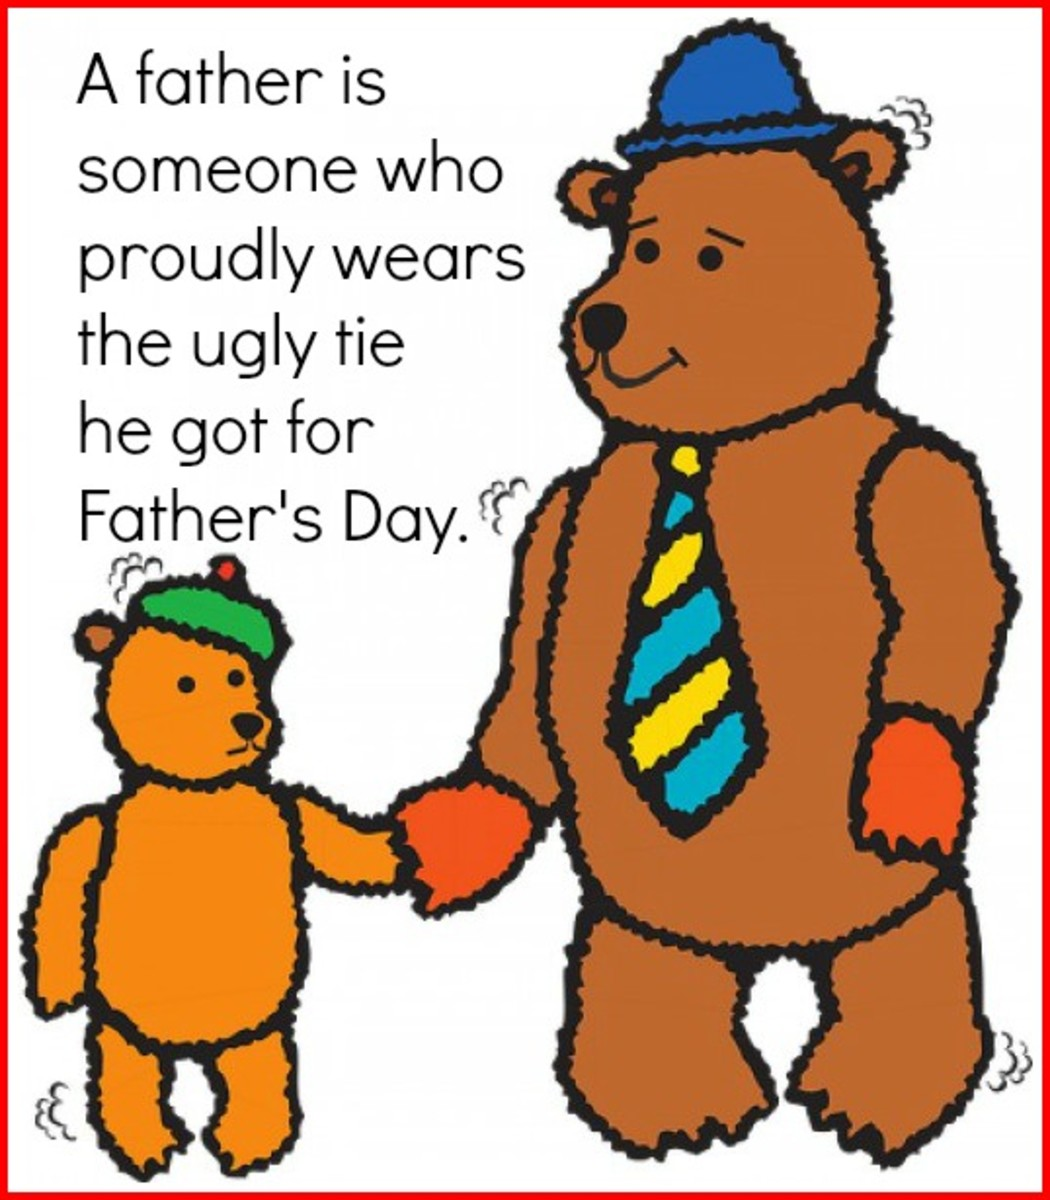 Teddy Bear Son and Father with Father's Day Tie